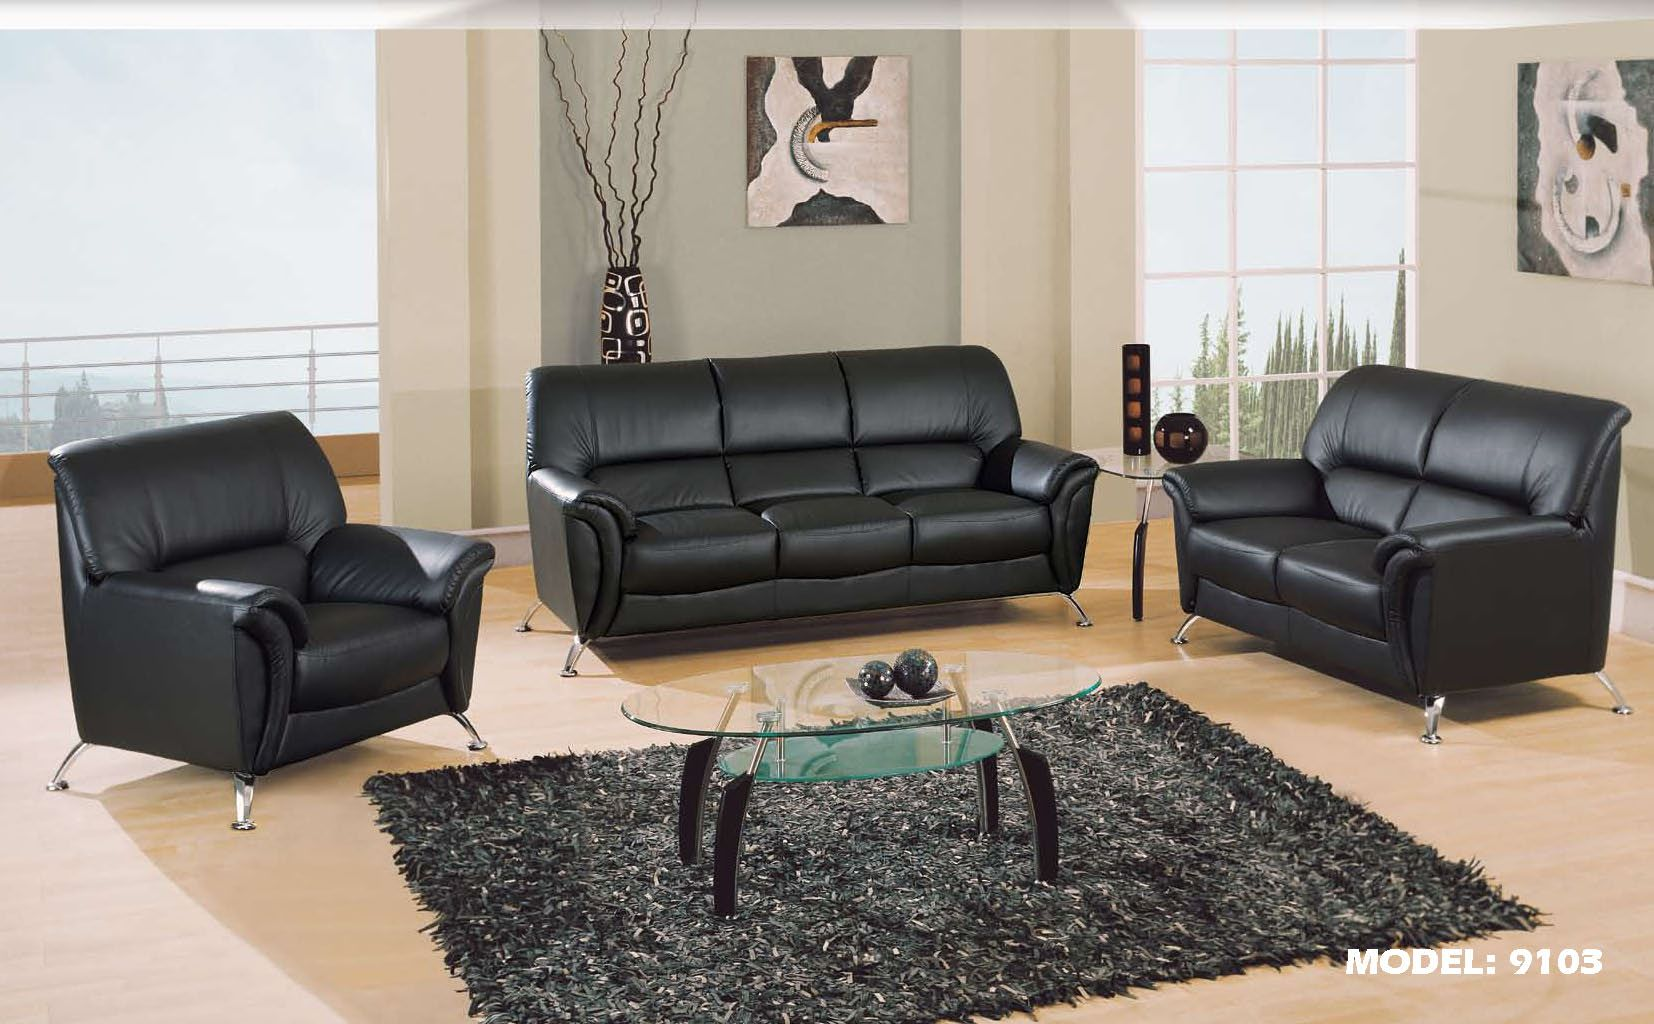 Sofa Set Offer Up Images Of Sofa Set Designs Google Search Sofa